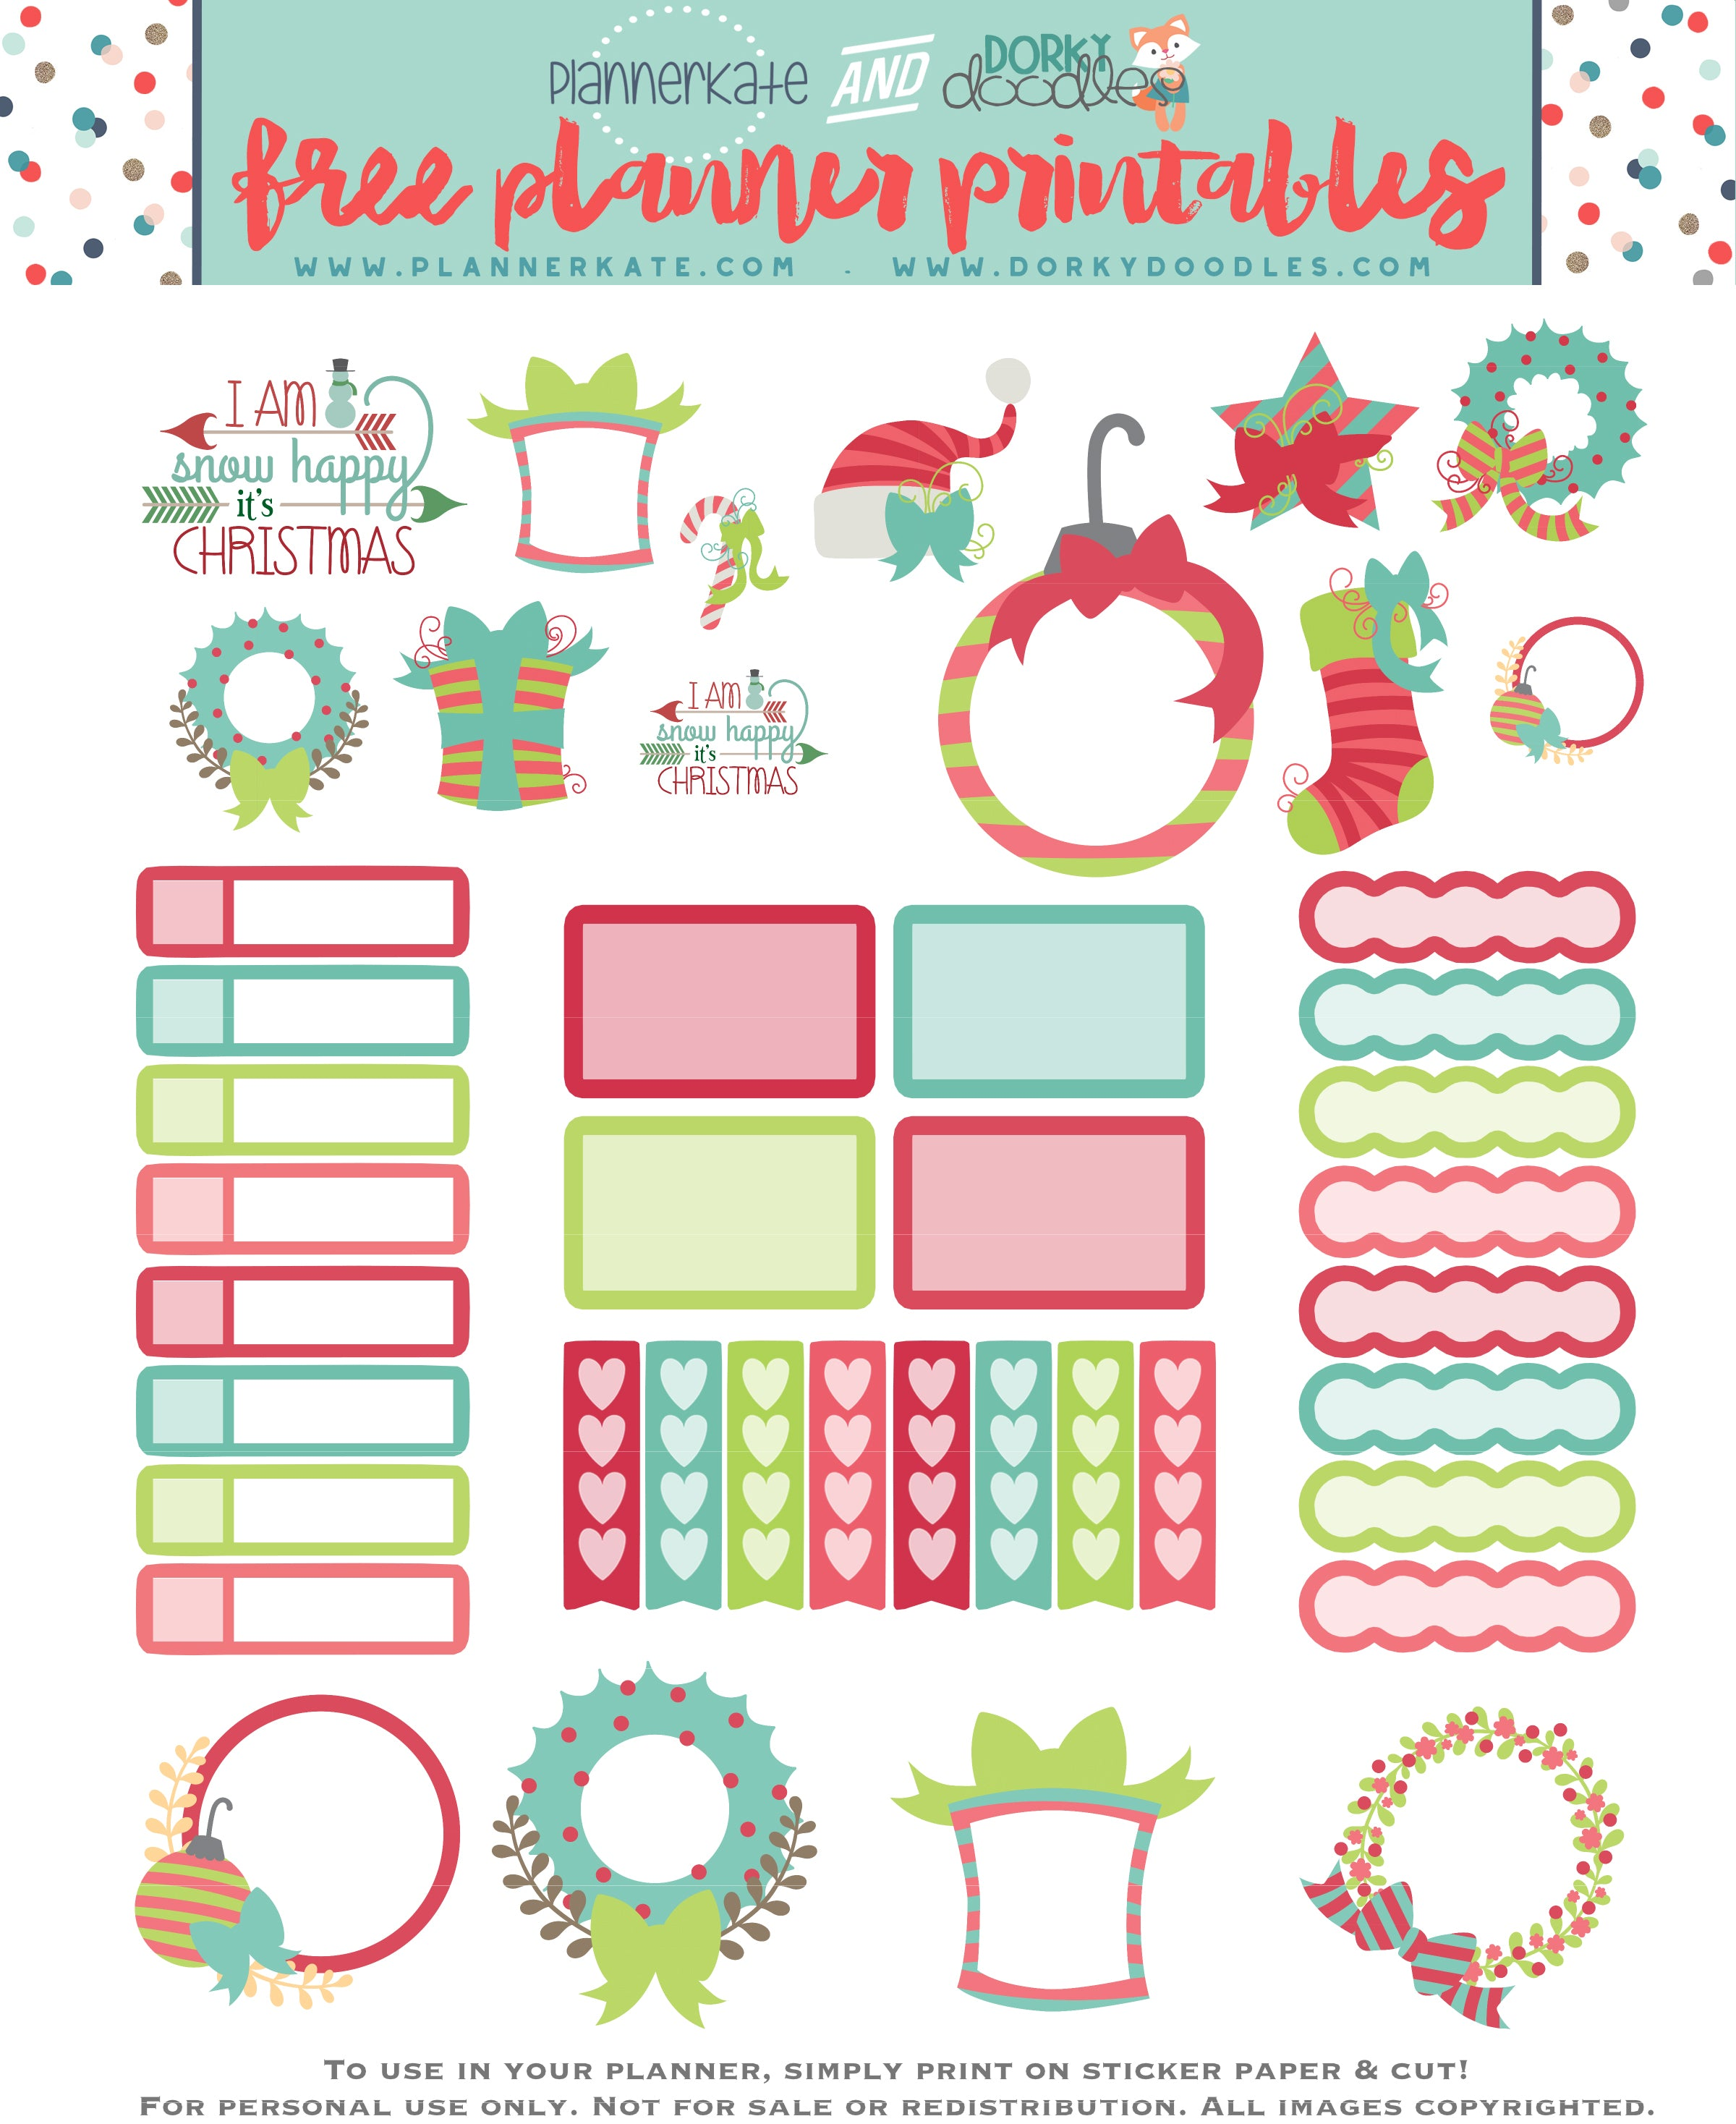 free printable christmas planner stickers – dorky doodles